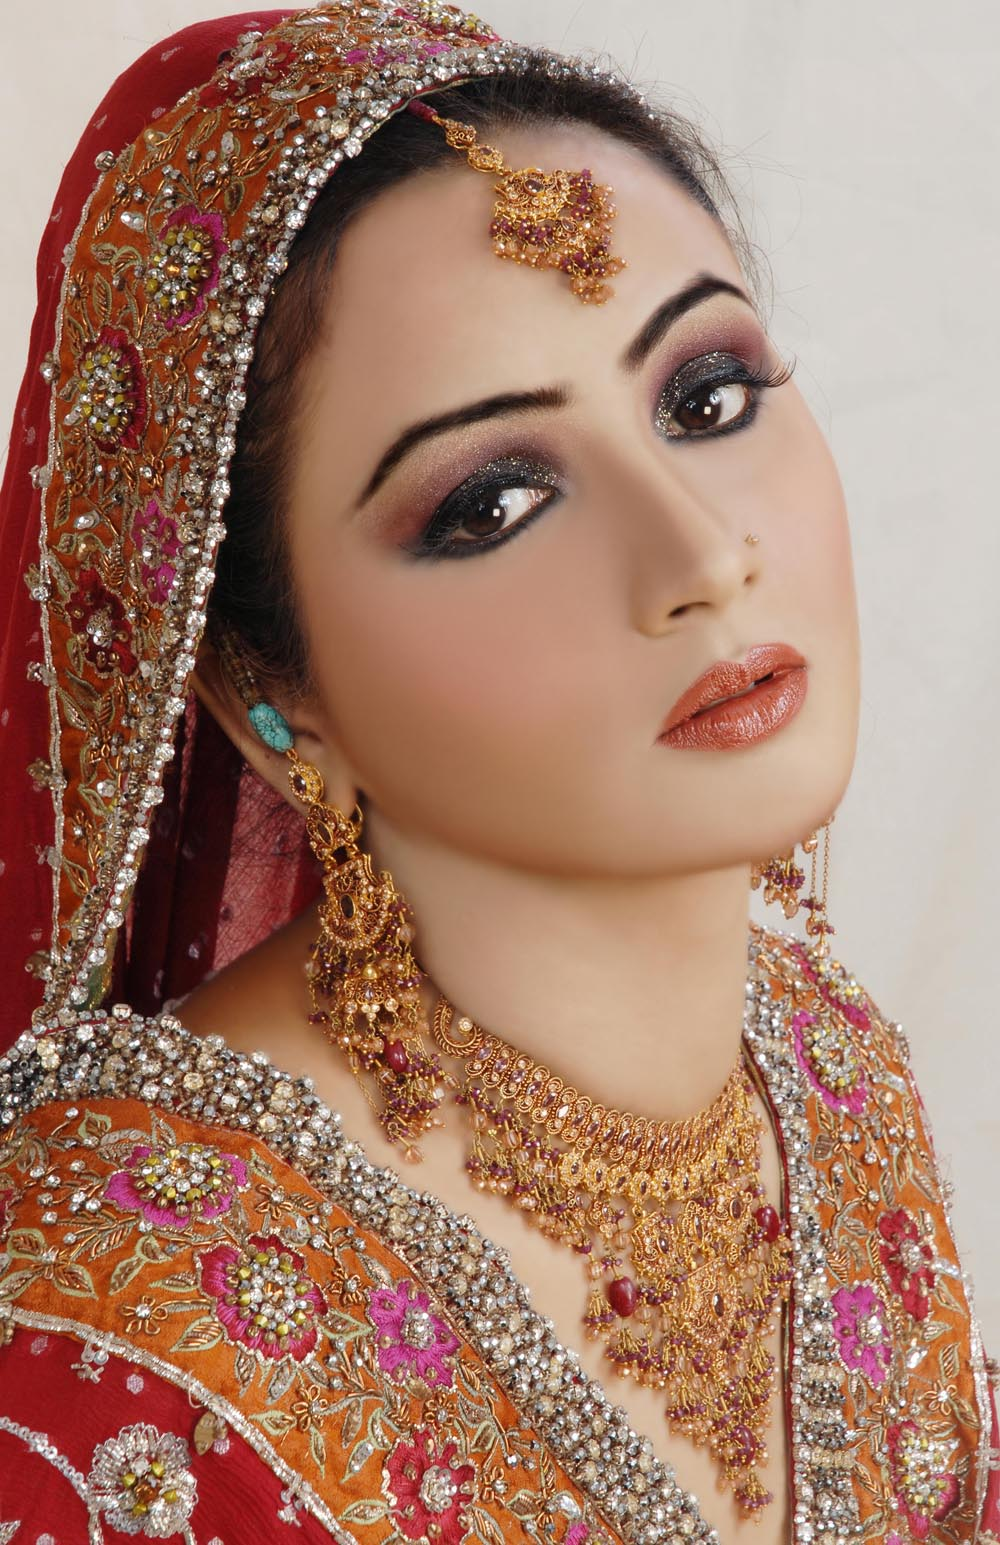 And Worldwide Asian Brides Advertisements 99